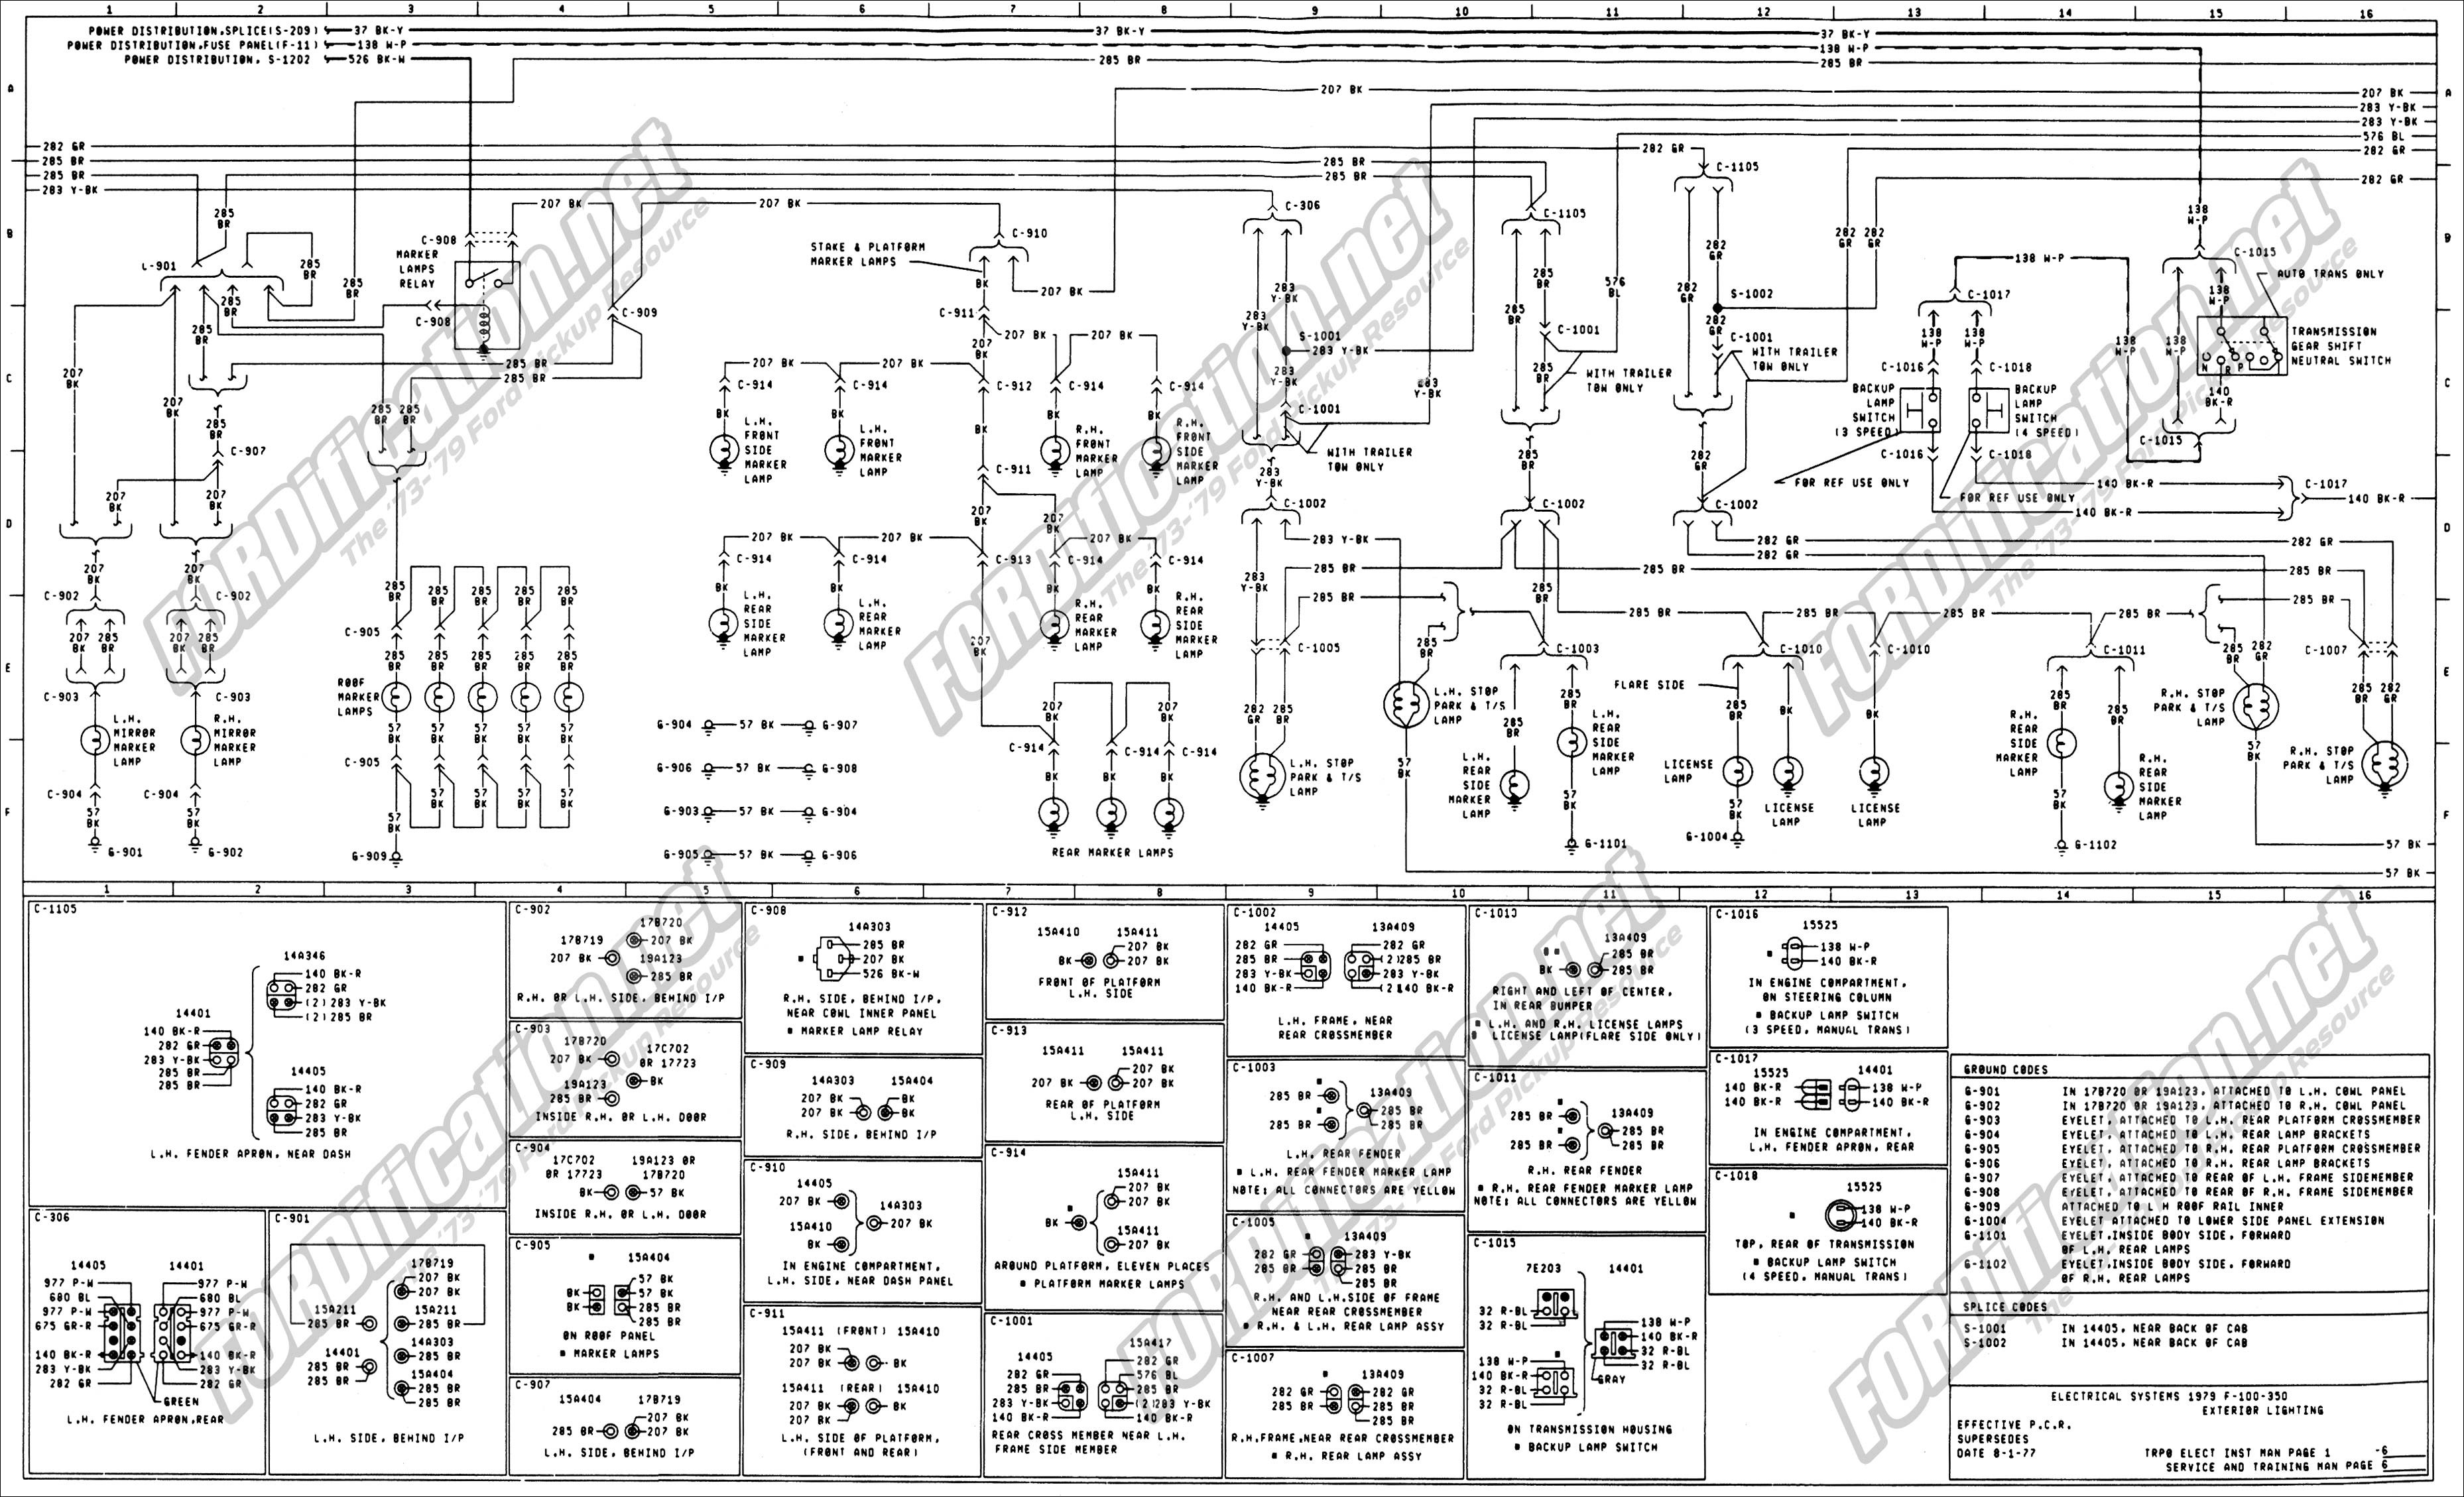 Wire Diagram for 2002 F550 Tail Lights 688 ford F 350 Tail Light Wiring Diagram Of Wire Diagram for 2002 F550 Tail Lights 1973 1979 ford Truck Wiring Diagrams & Schematics